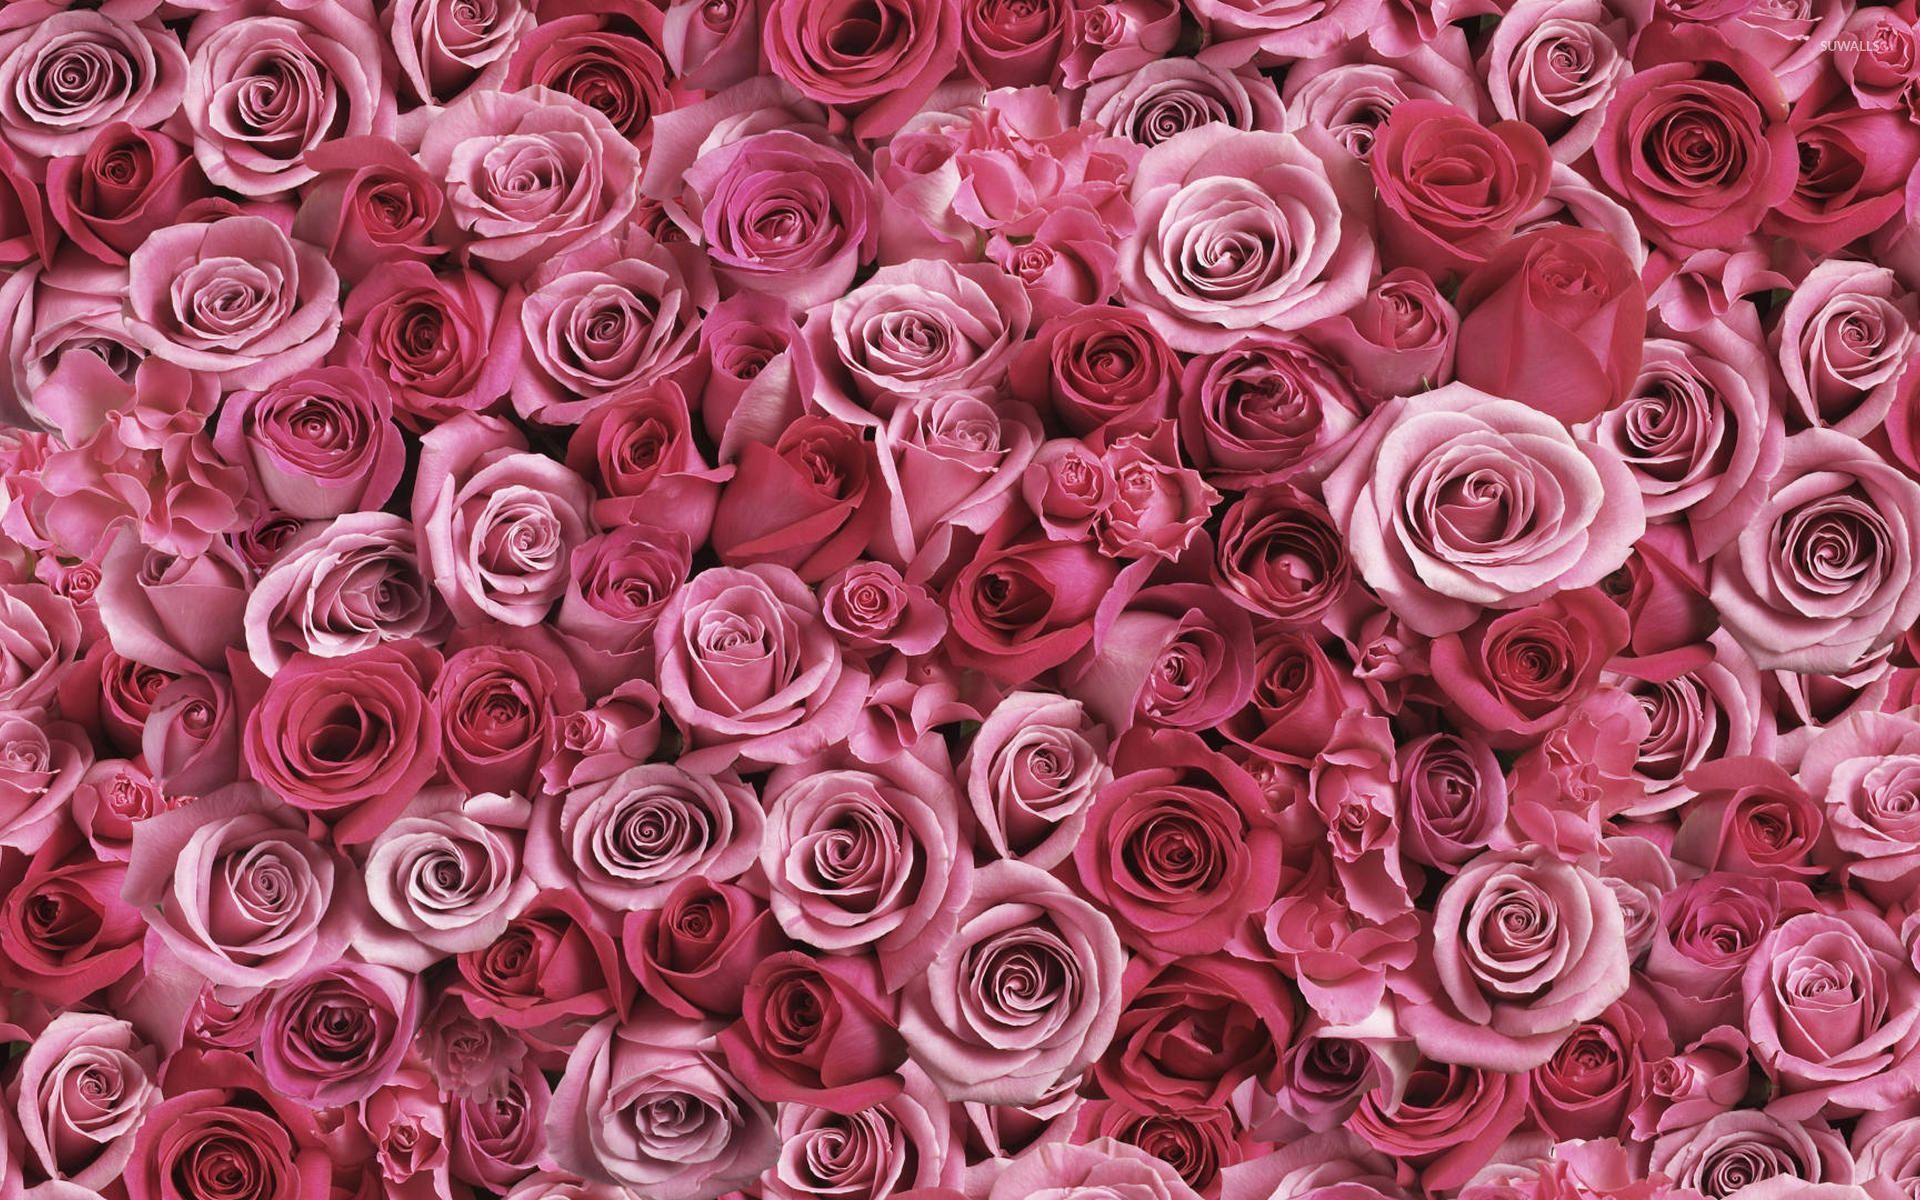 Rose Wallpaper Android Apps On Google Play Rose Flower Wallpaper Flower Wallpaper Rose Wallpaper